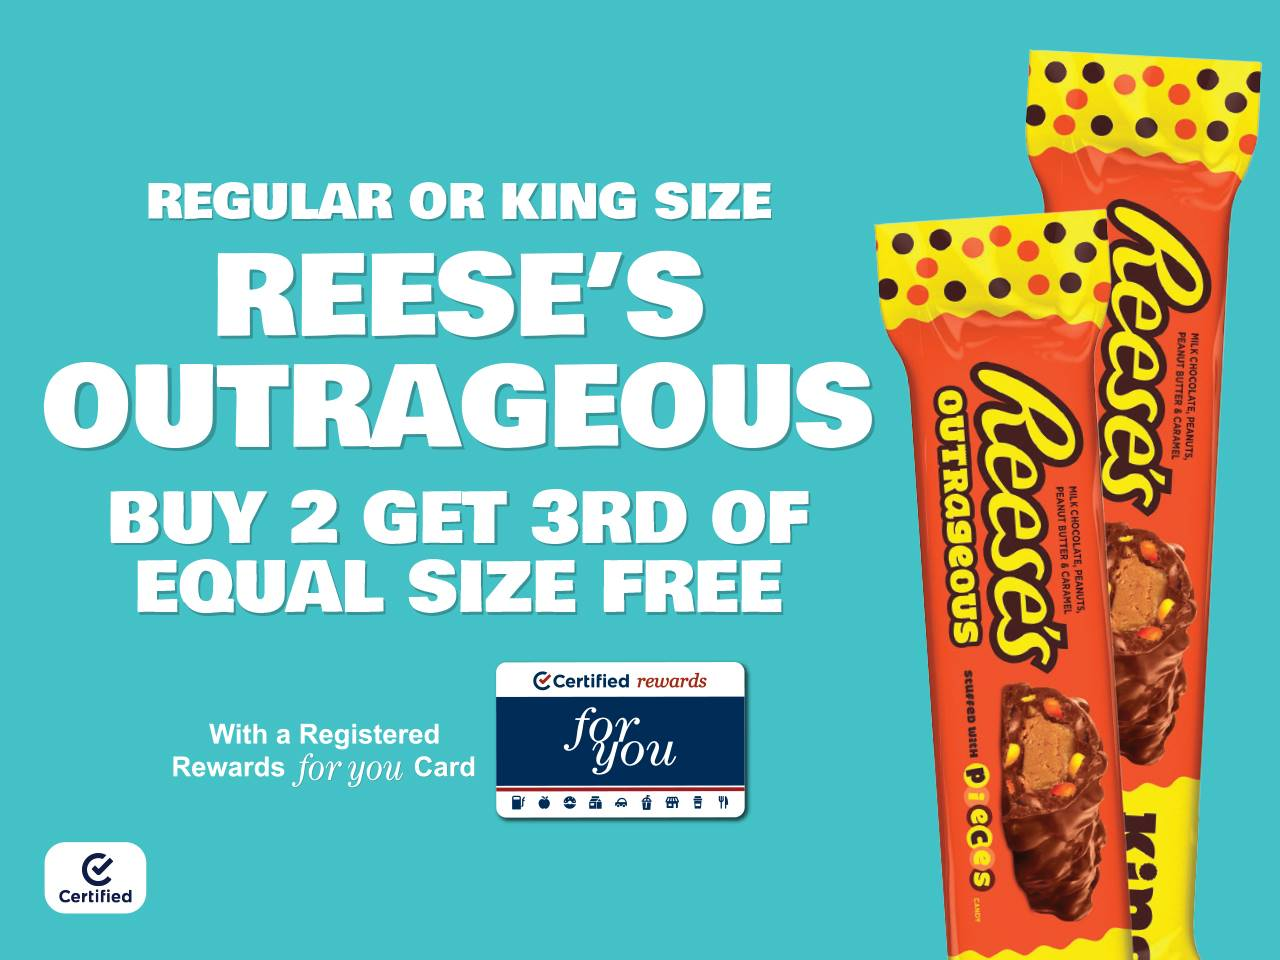 Reg or King Size Reese's Outrageous Buy 2, Get 3rd Free (Equal Size) with Registered Rewards For